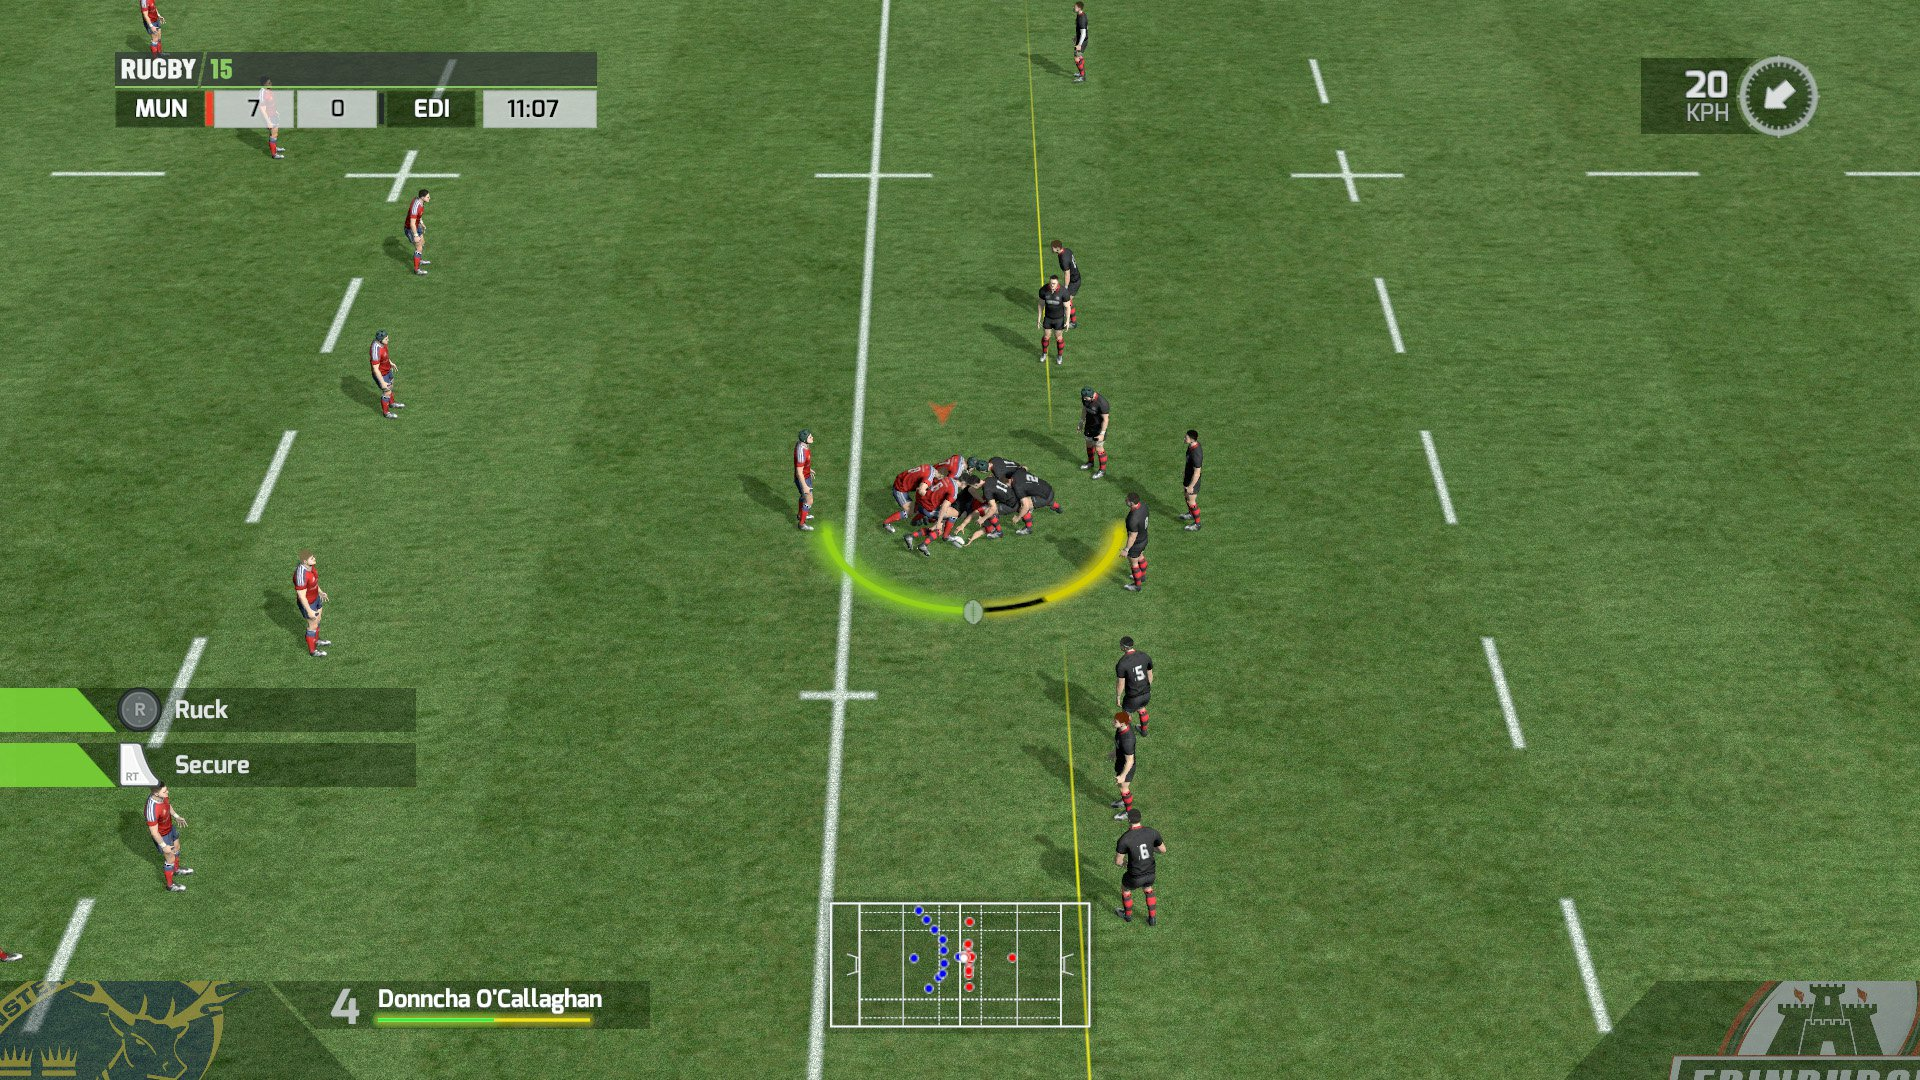 Rugby 15 PRO 12